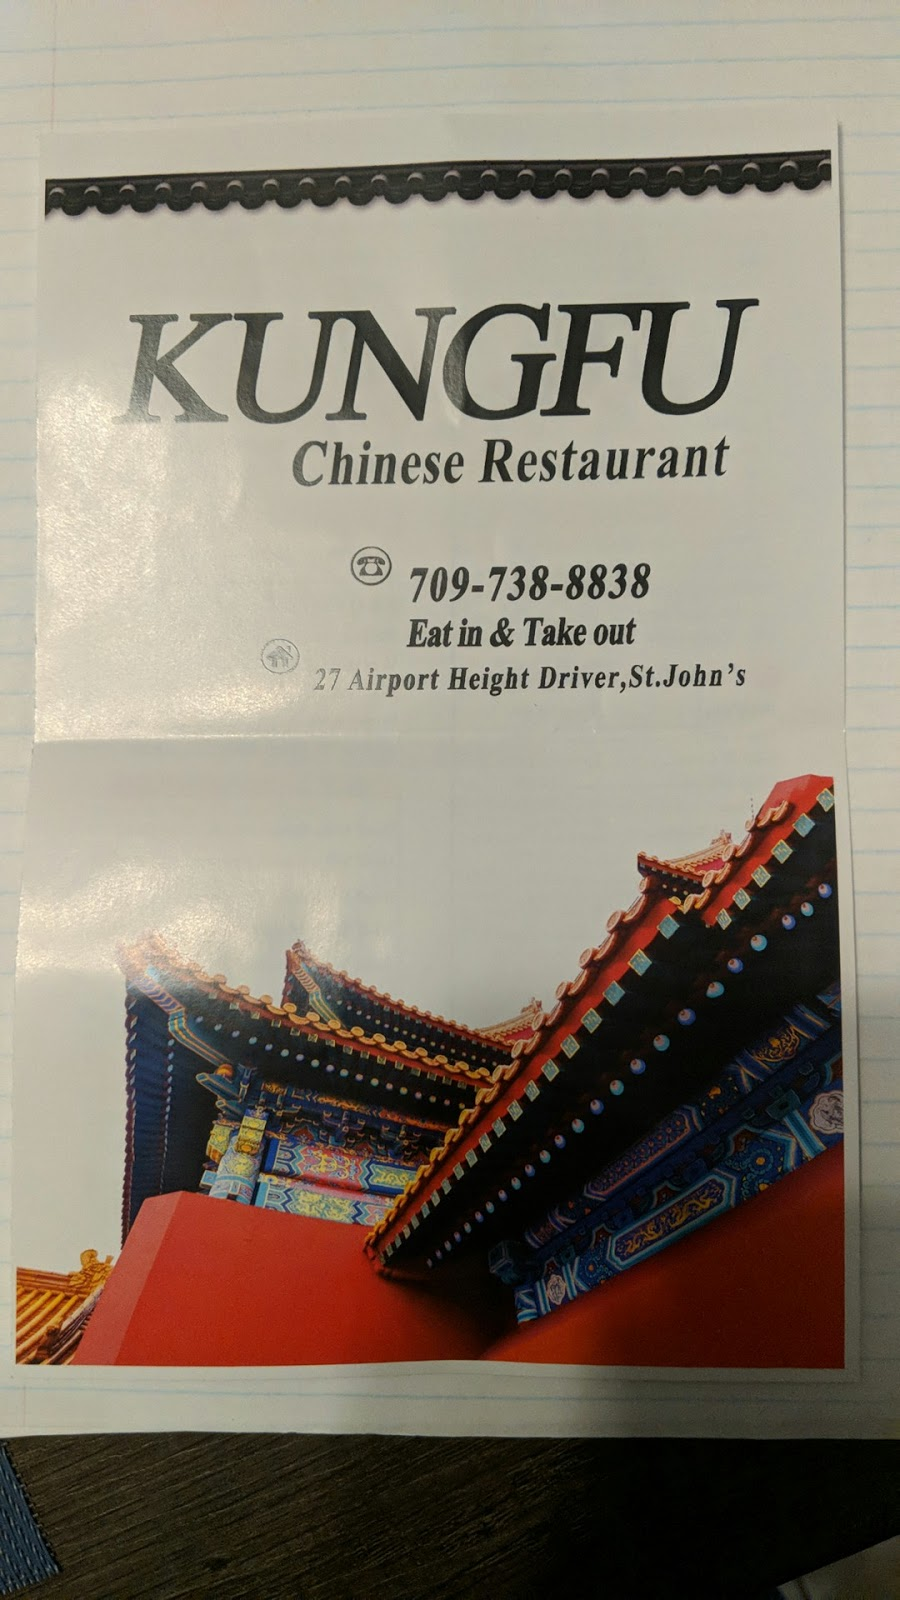 Kung Fu Chinese Restaurant   restaurant   27 Airport Heights Dr, St. Johns, NL A1A 4W8, Canada   7097388838 OR +1 709-738-8838